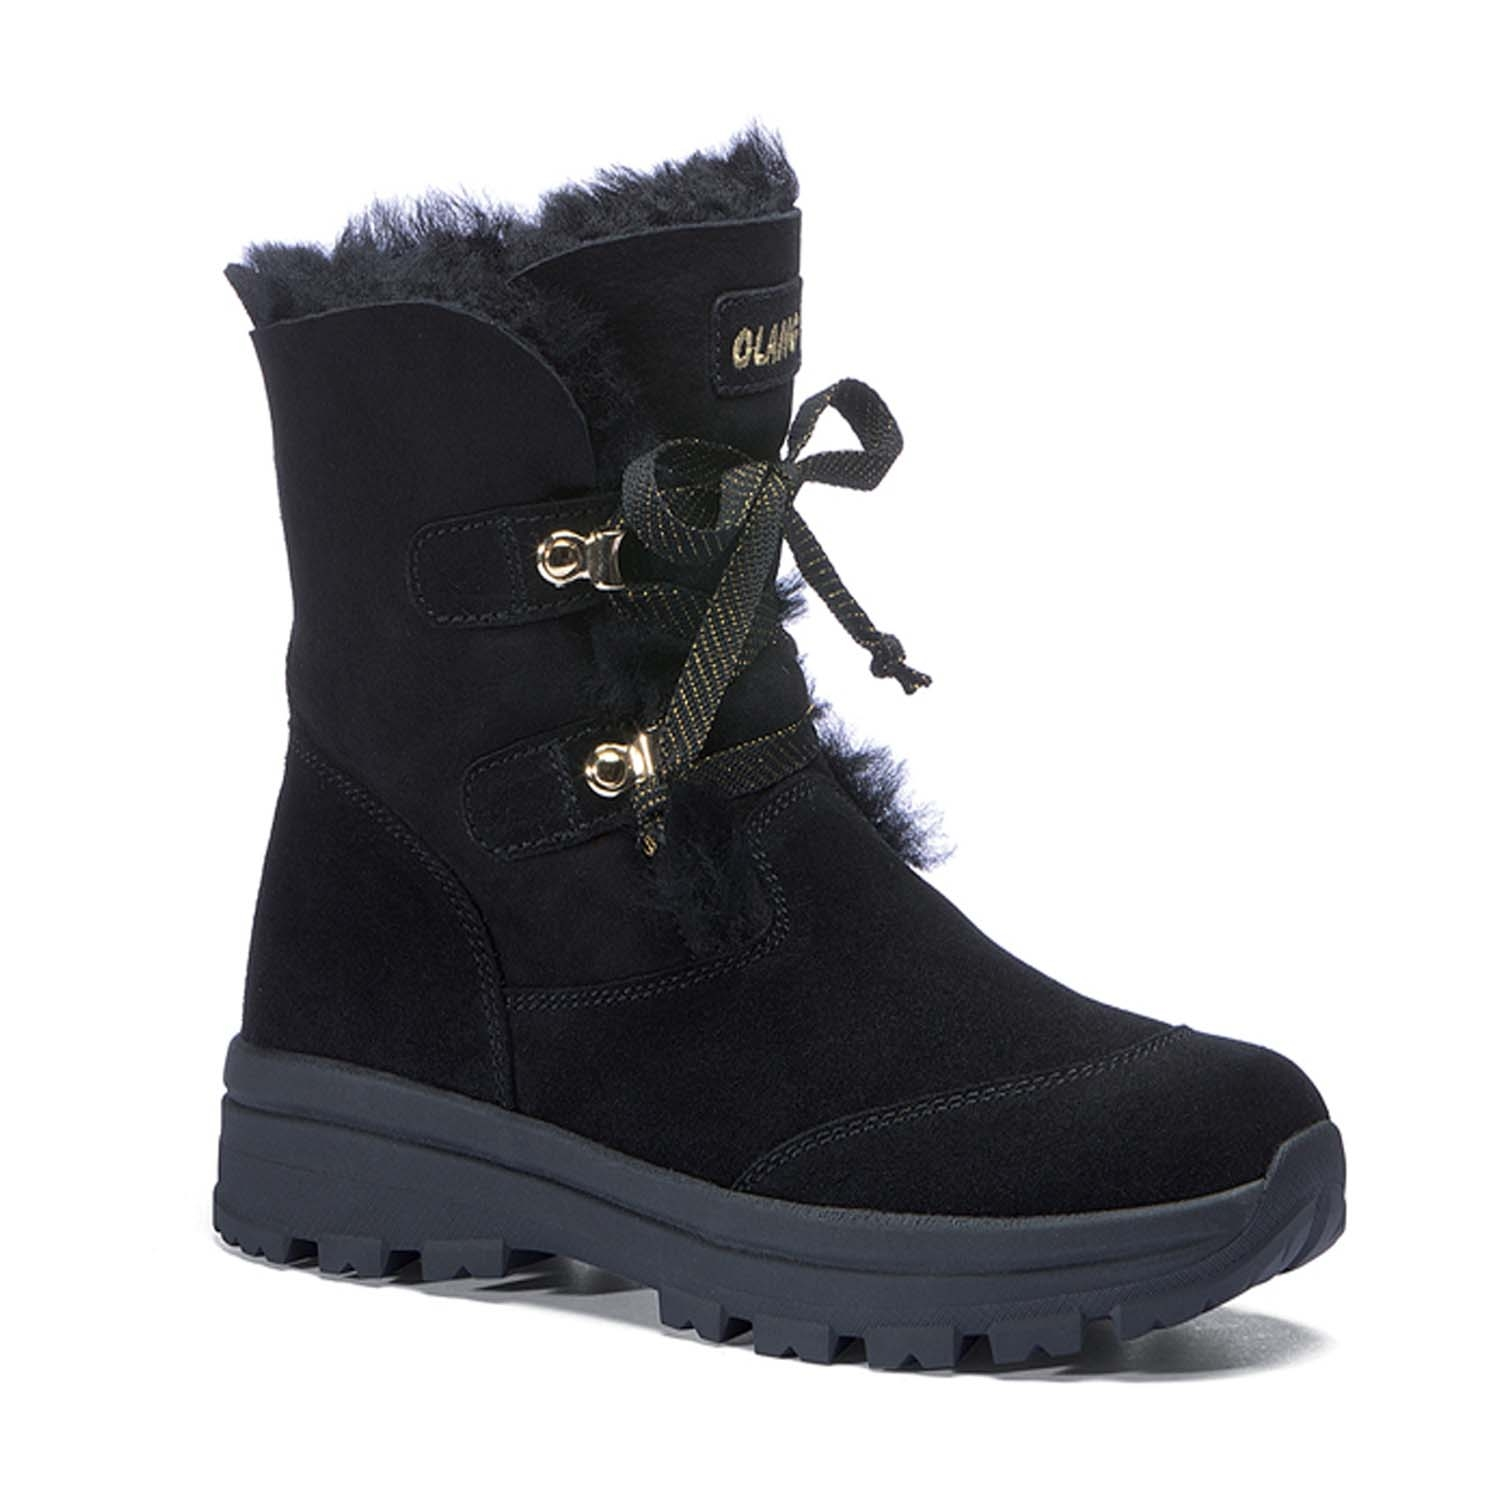 Olang Lappone Boot Black 2020